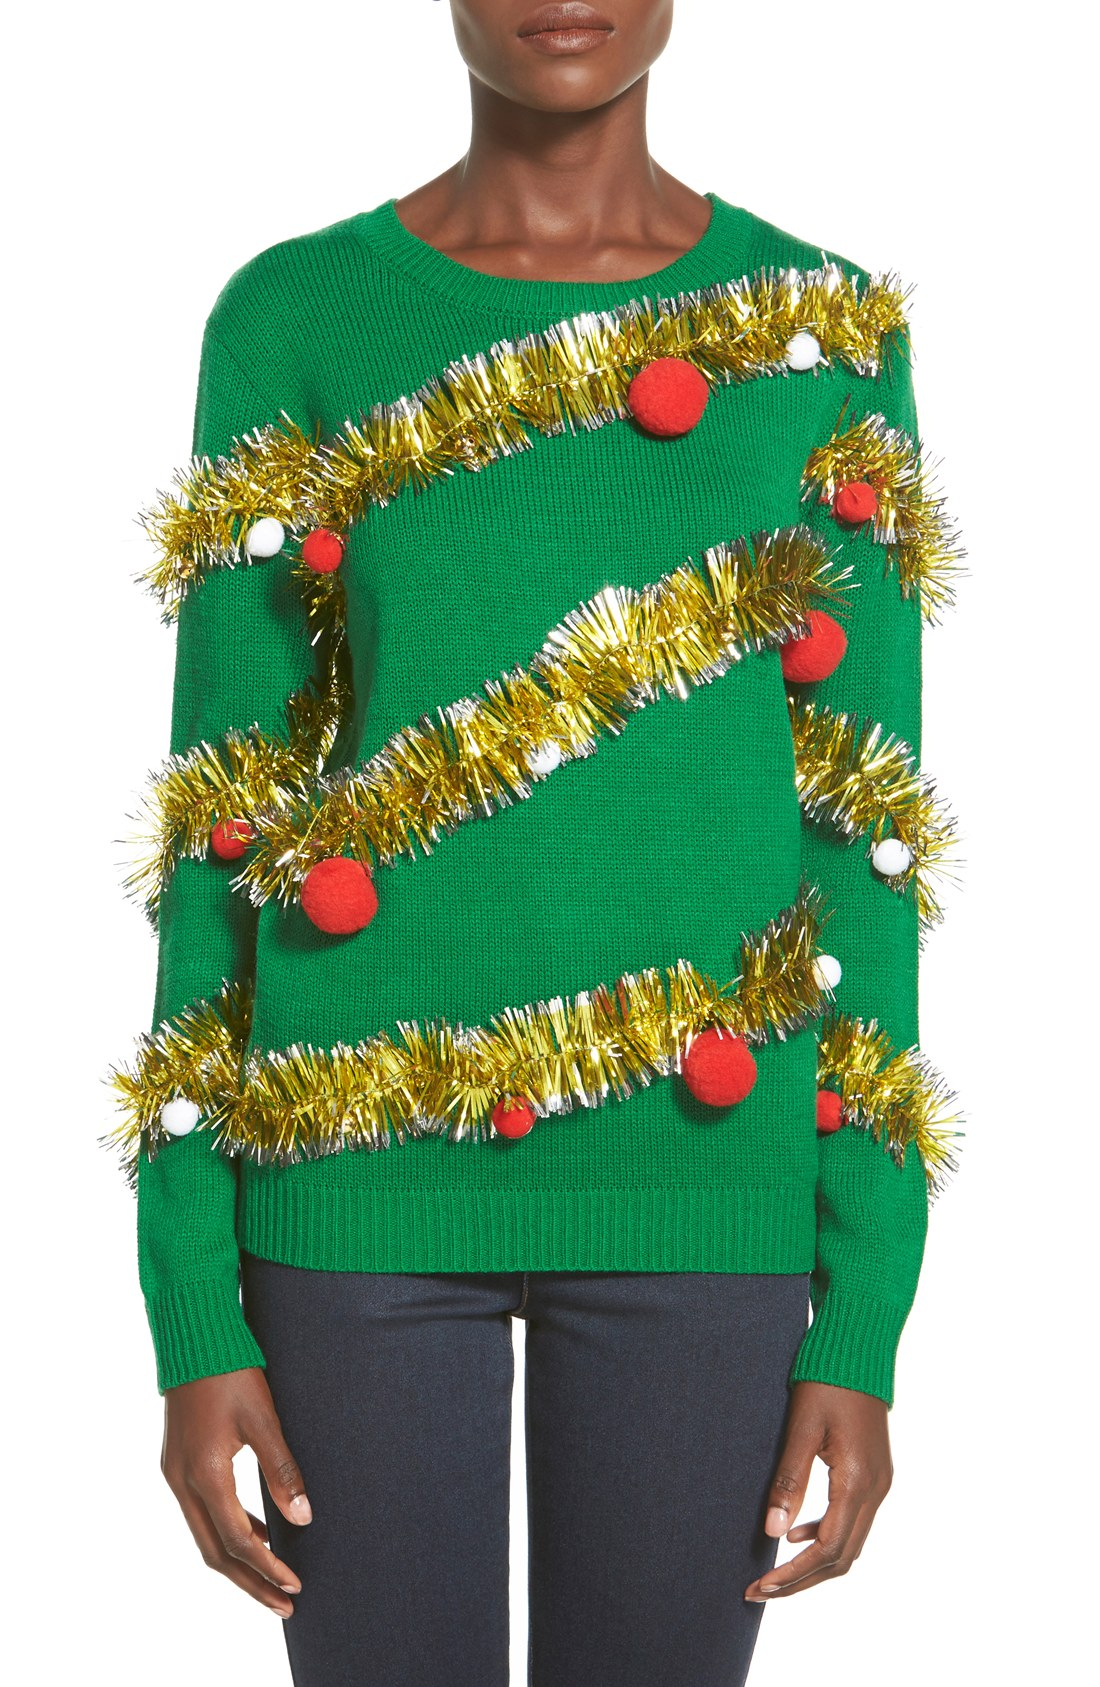 Is there use for that Ugly Christmas sweater?